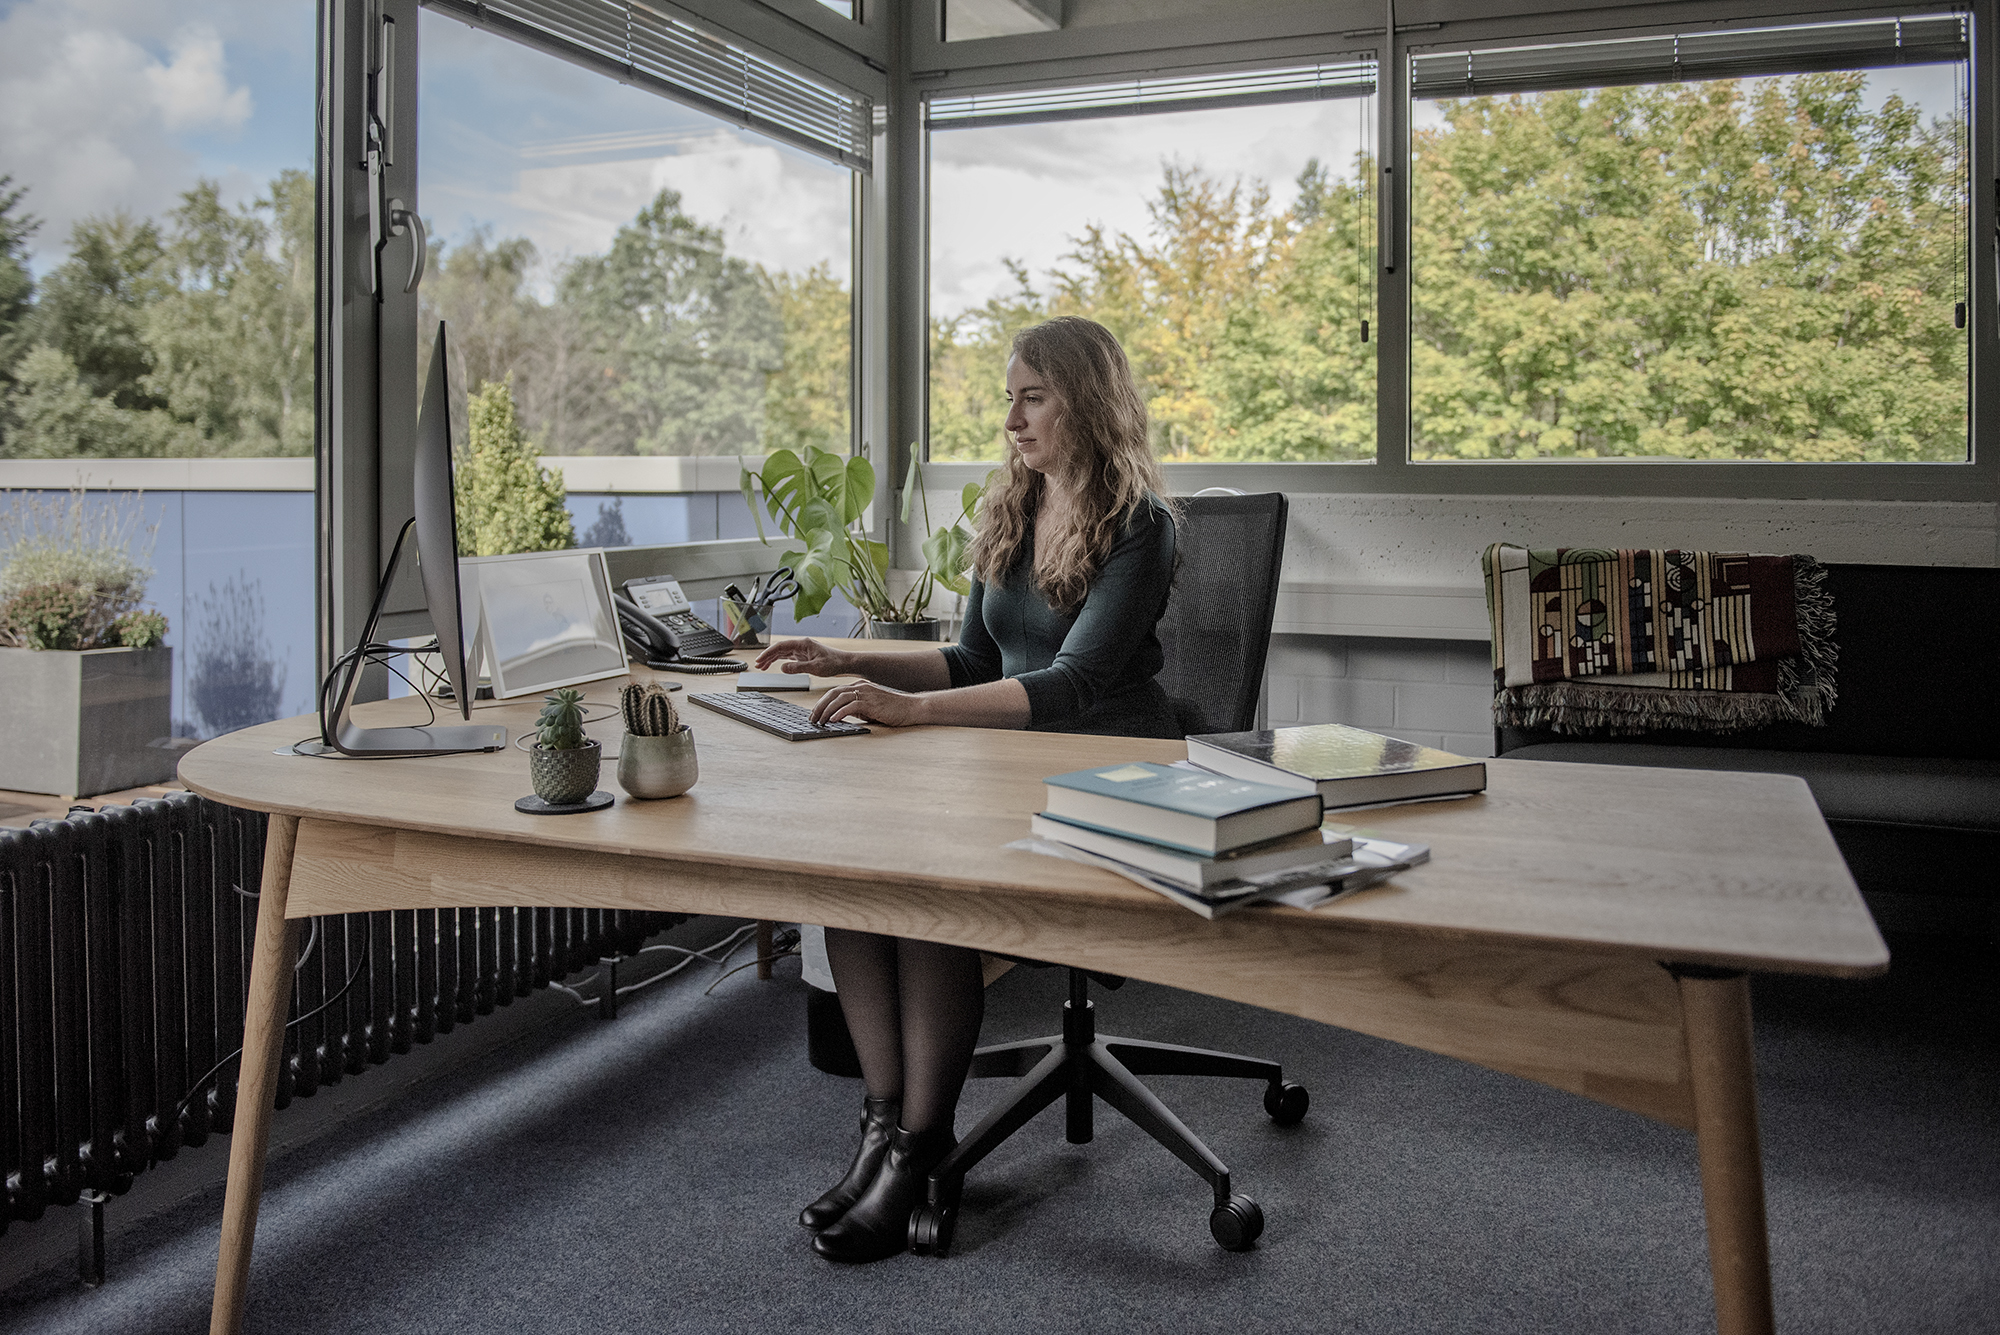 Kreidberg sits at a desk surrounded by glass walls that look out onto trees.